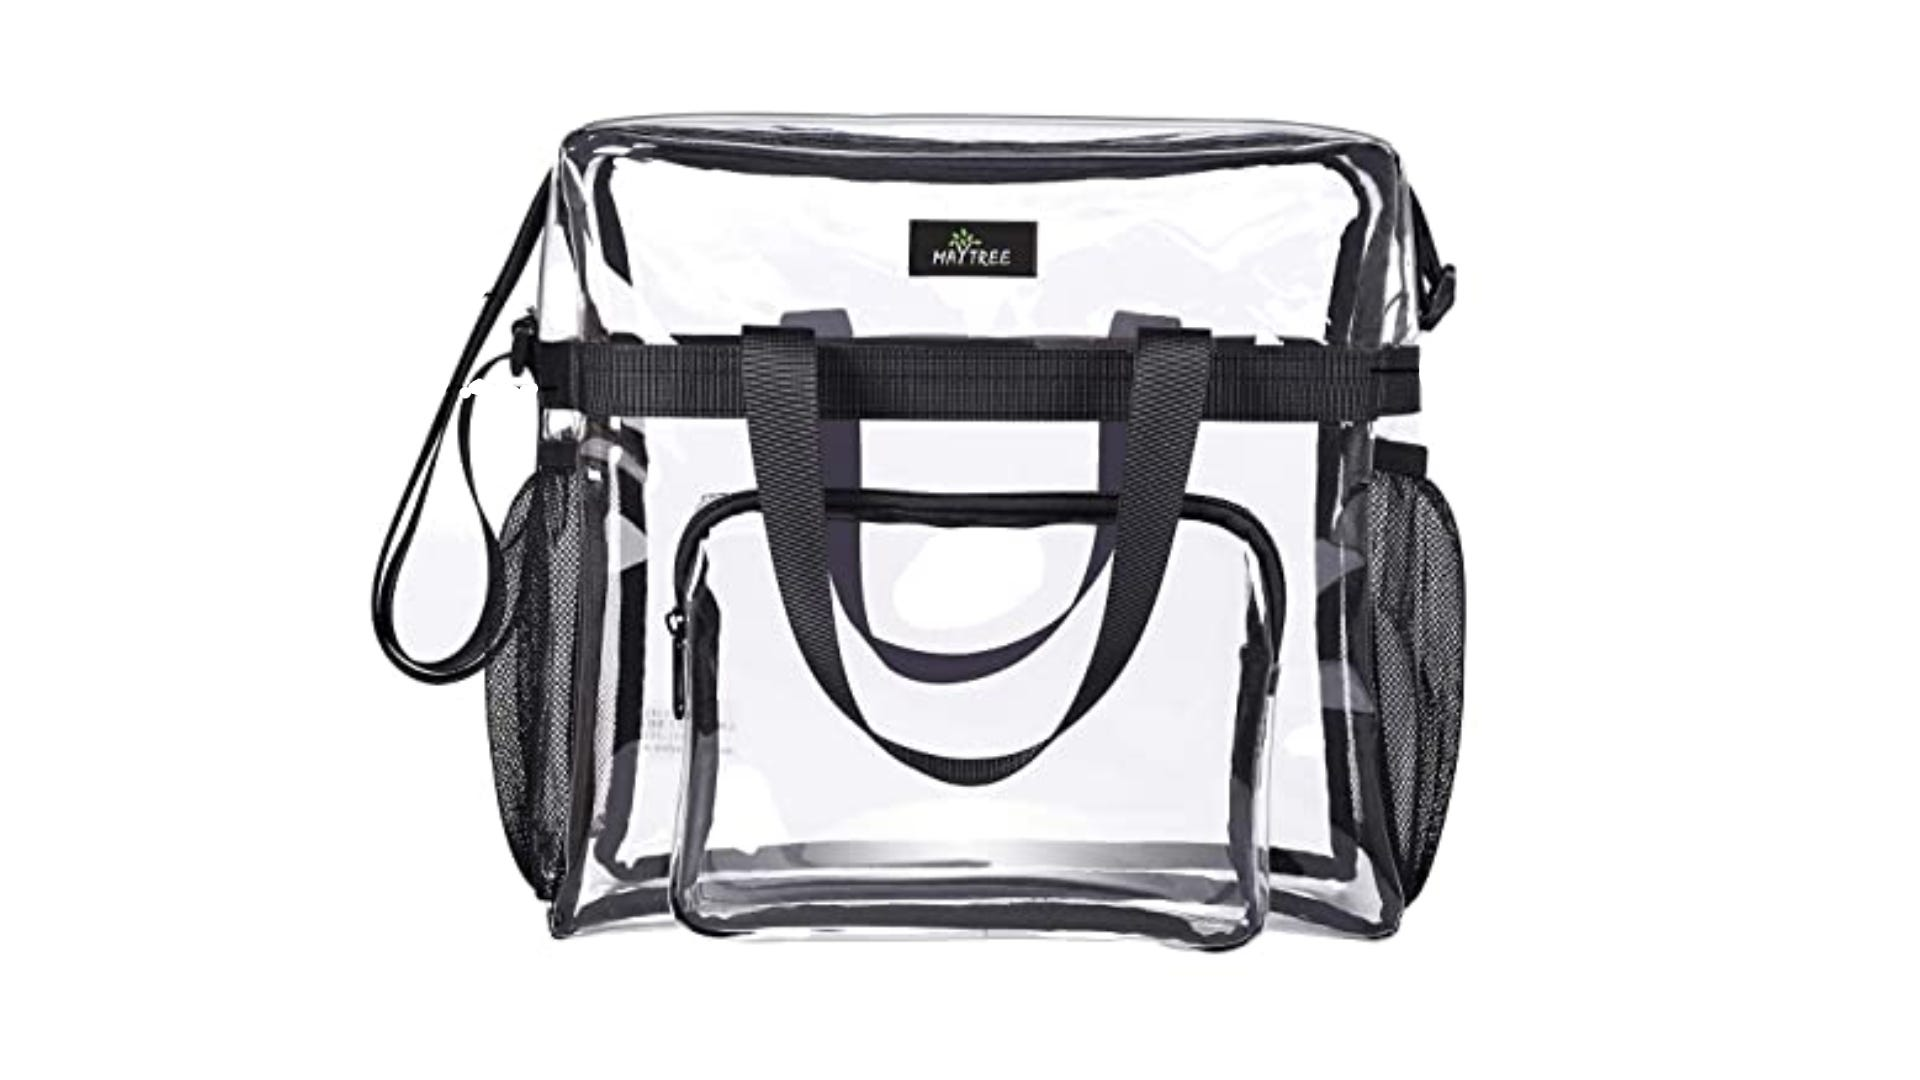 clear multi-pocket tote sized bag with black accents and straps